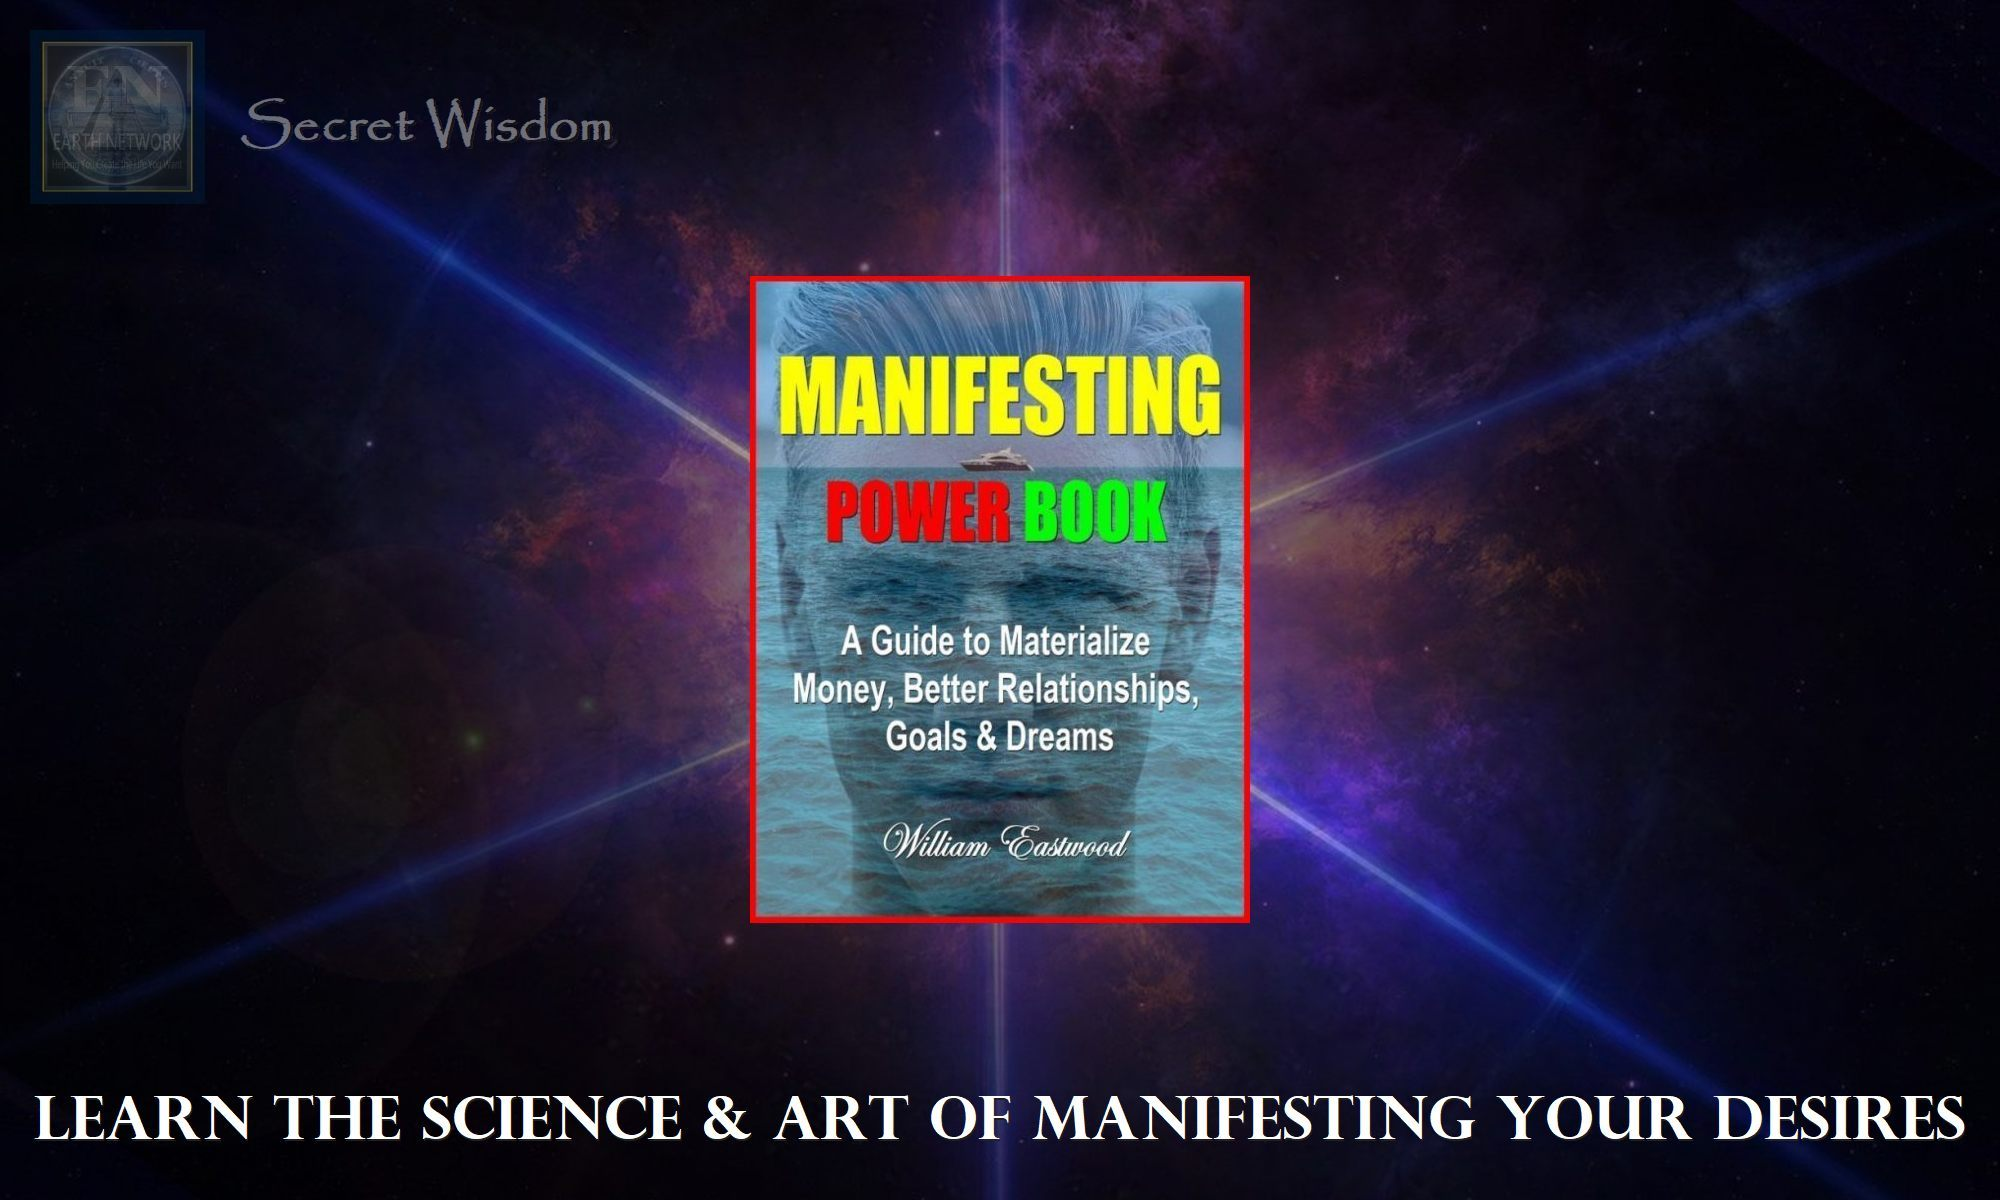 manifesting-power-book-a-guide-to-materialize-money-better-relationships-goals-dreams-William-Eastwood-2020-book-ebook-illustration